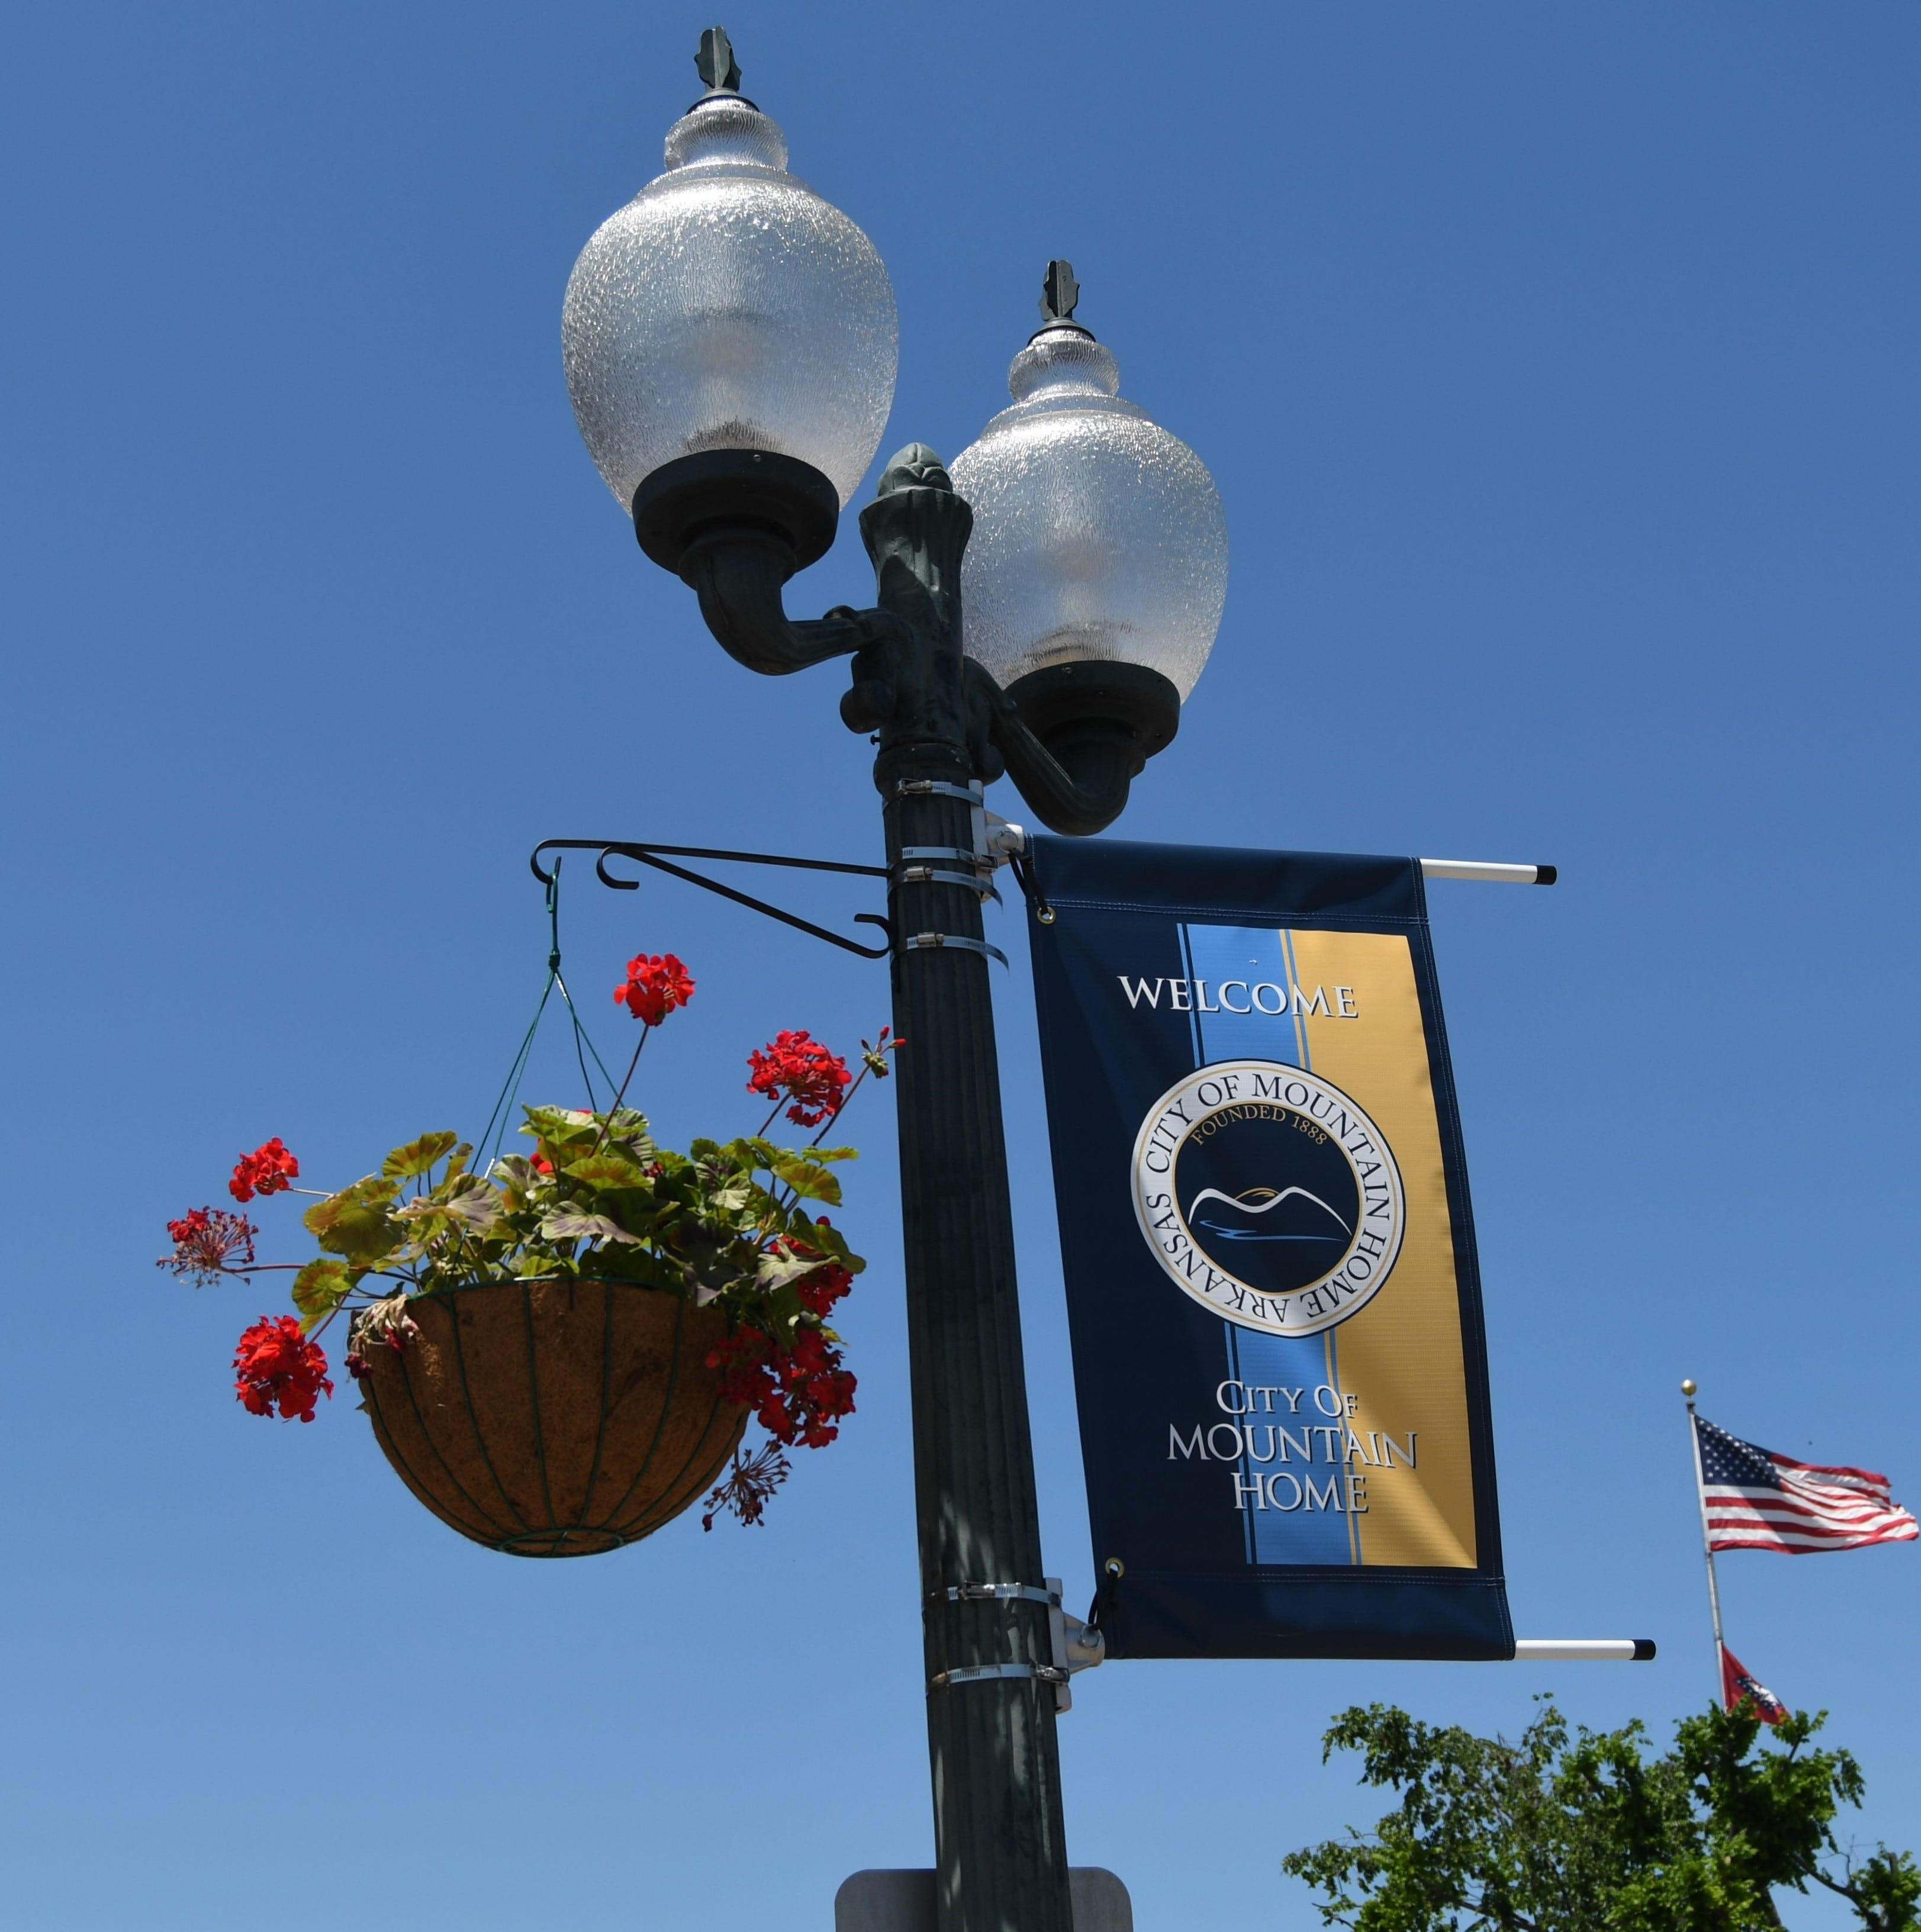 Banners, flowers now adorn square